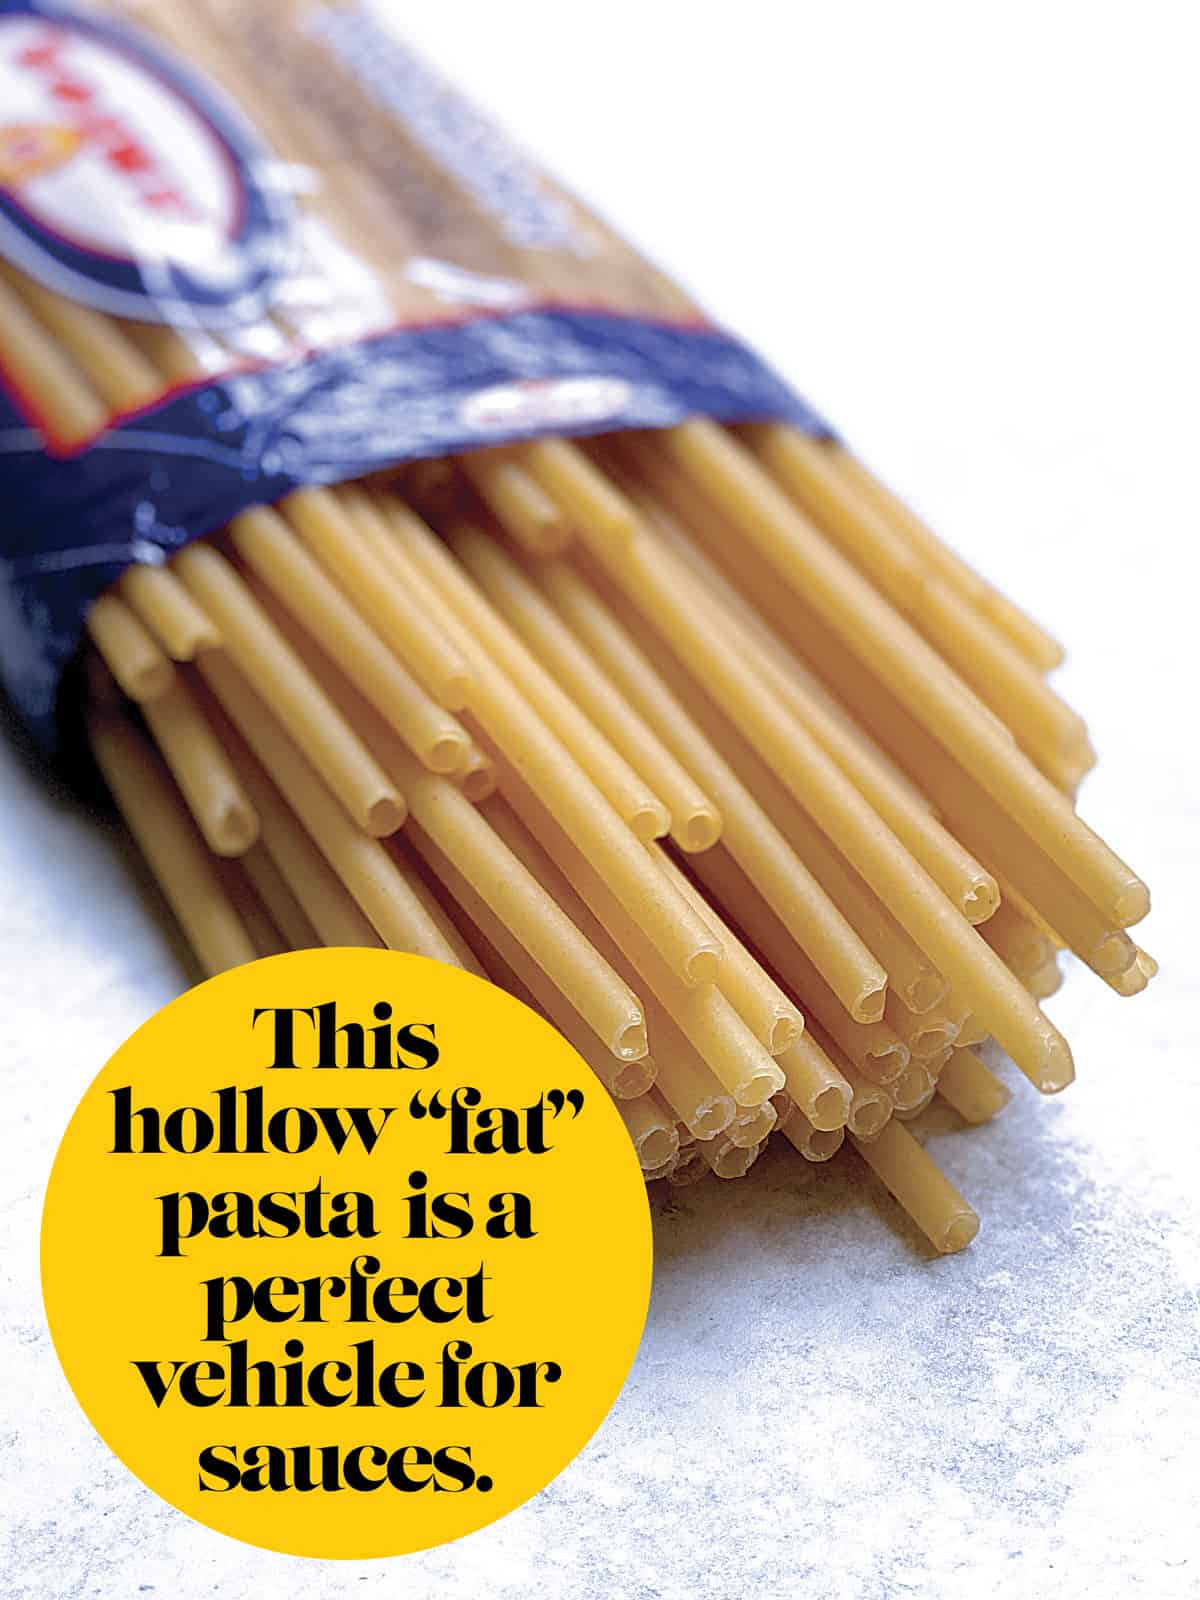 An open pack of pasta with some long macaroni showing.